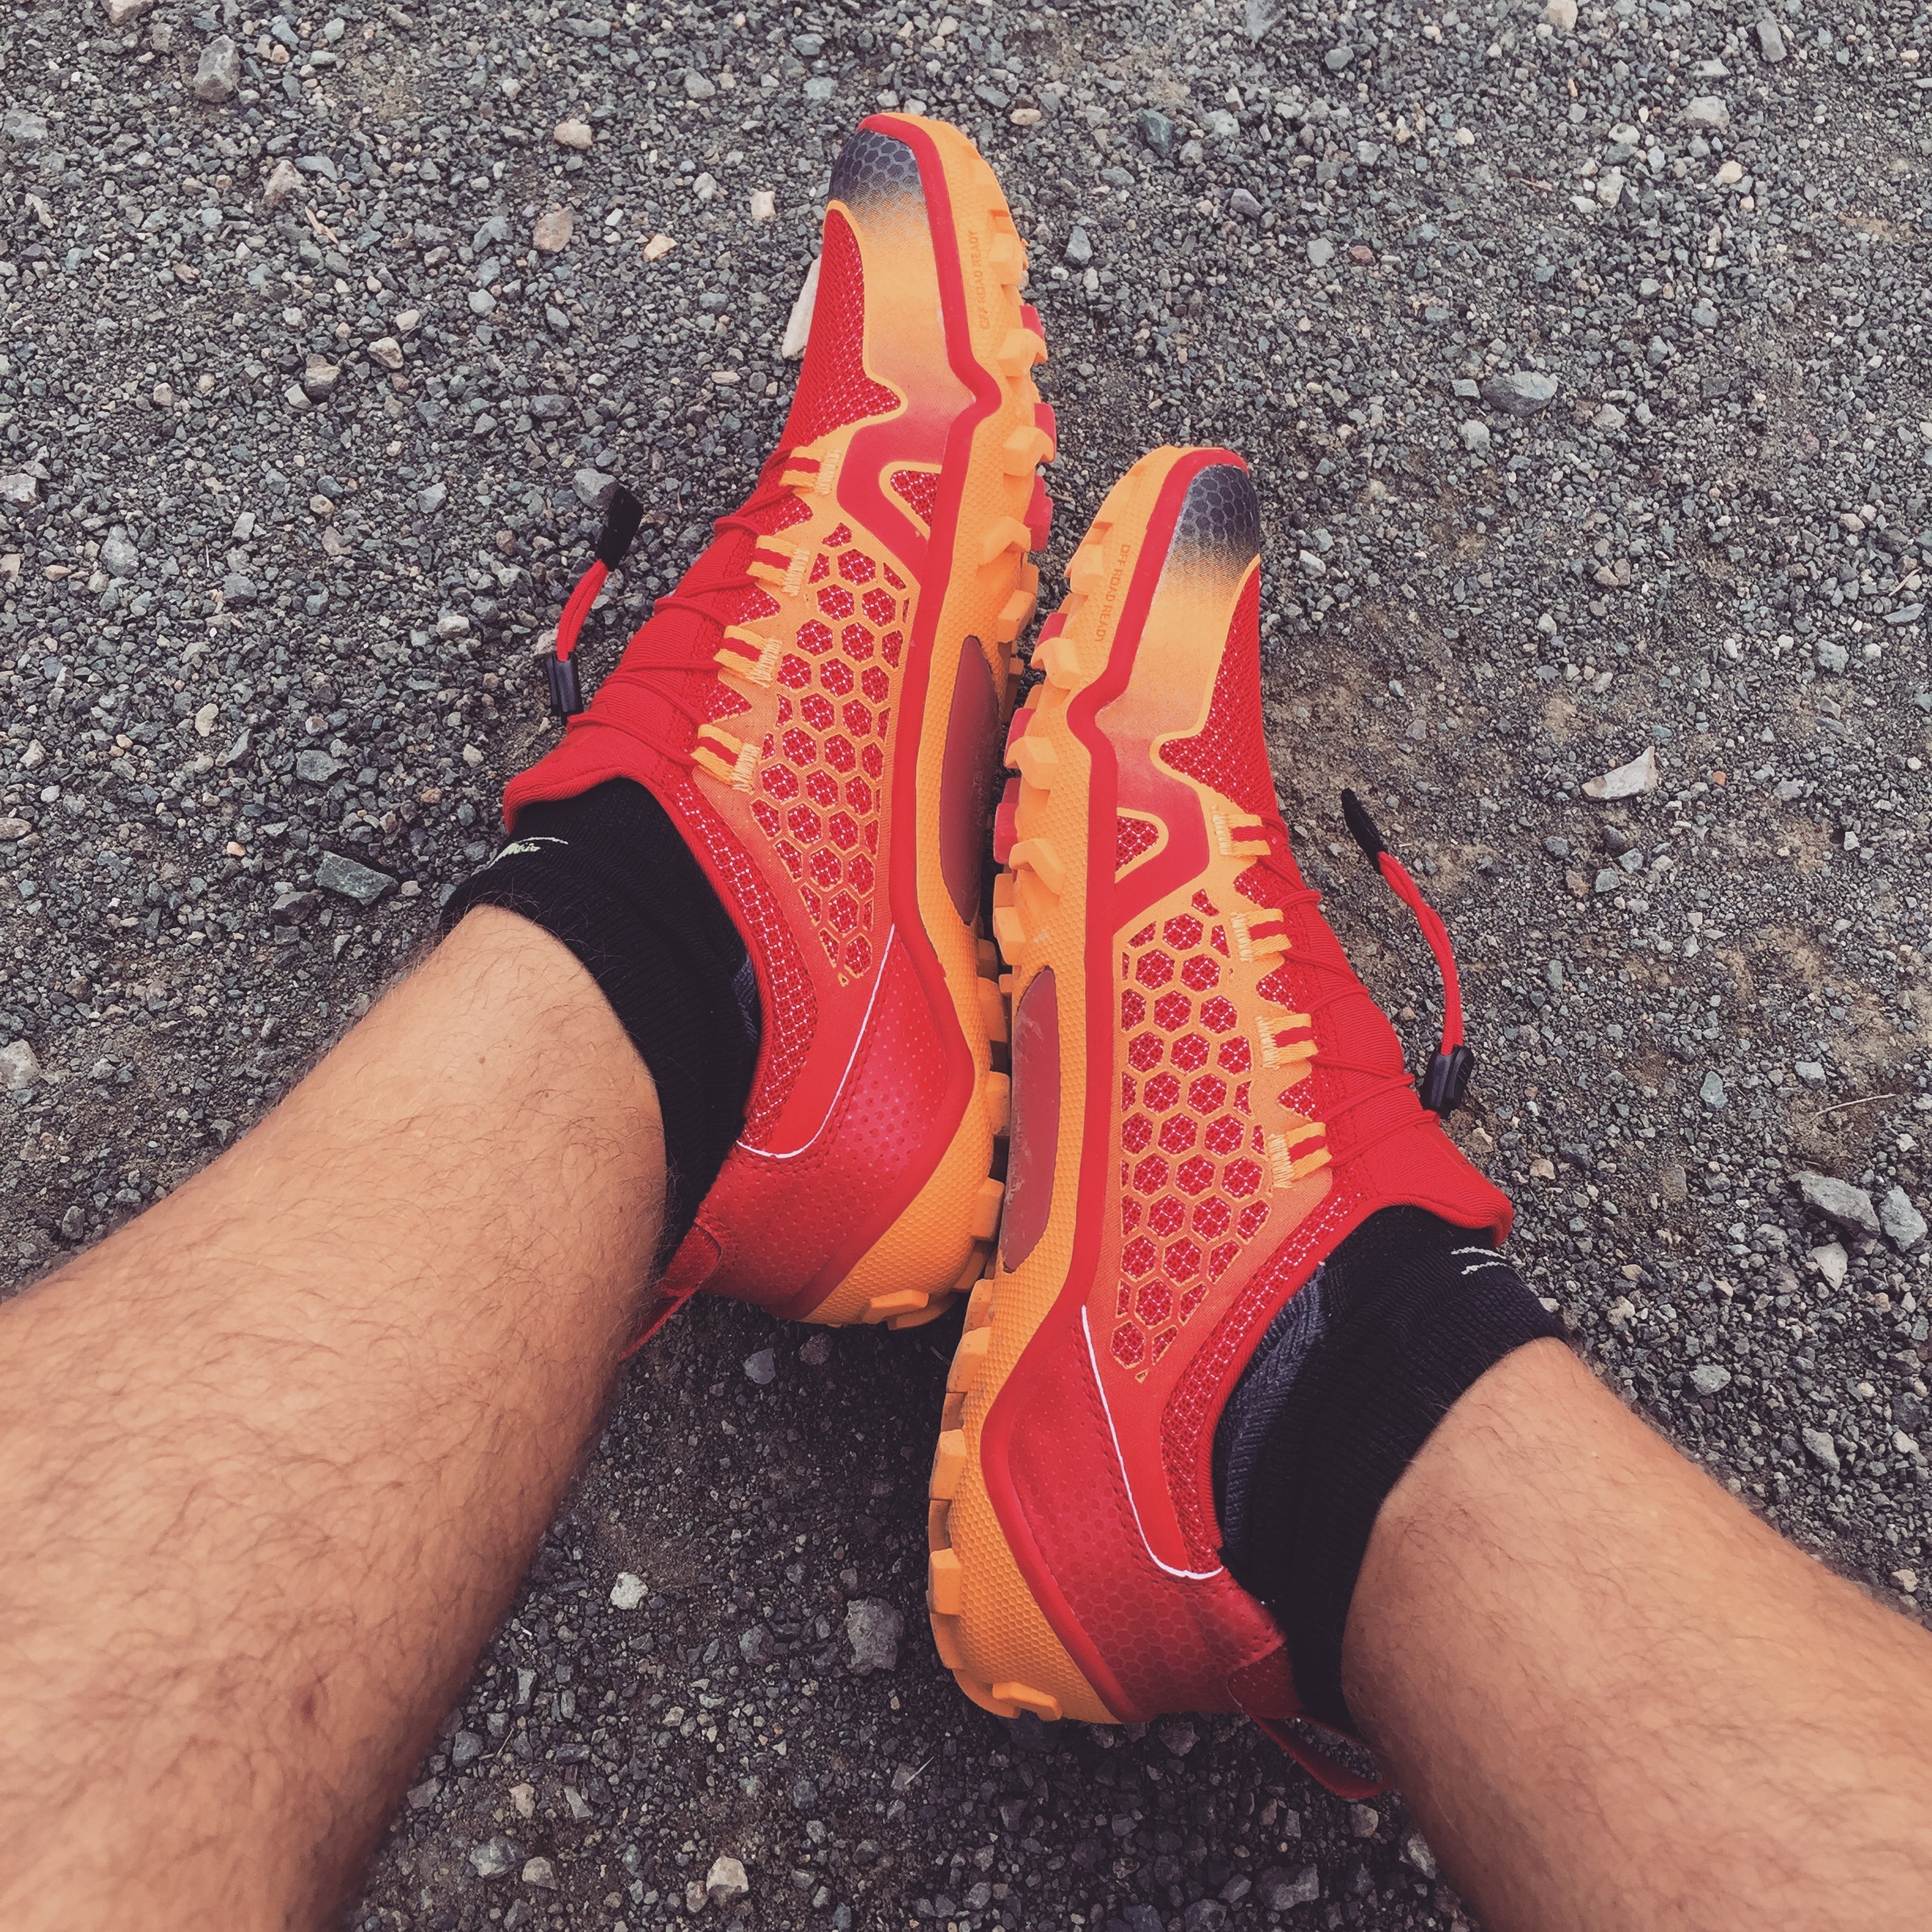 Are Minimalist Running Shoes Good For Plantar Fasciitis